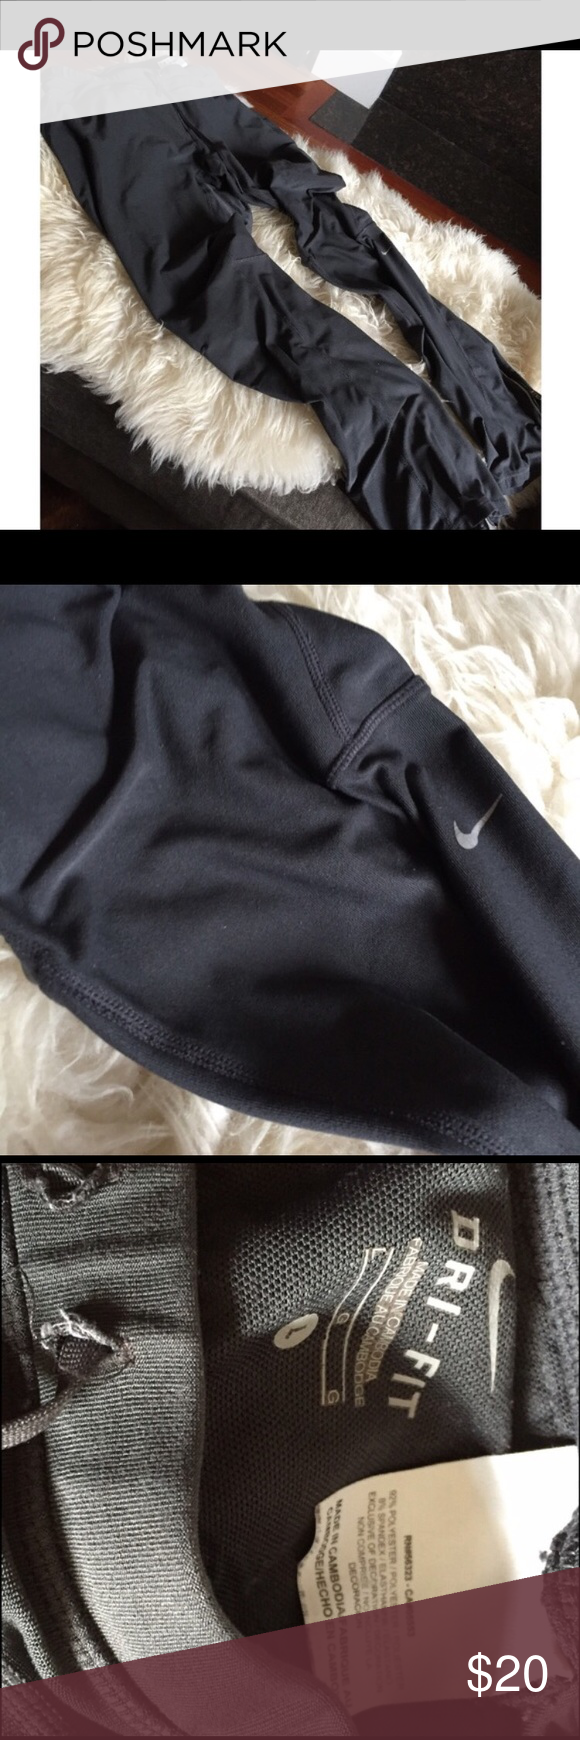 Nike Grey Women's Athletic Pants with Ankle Zipper Nike Grey Women's Athletic Pants with Ankle Zipper...Super comfy! Slightly worn, perfect for working out in the cold since these pants are long, they also make your butt look good! Nike Pants Track Pants & Joggers